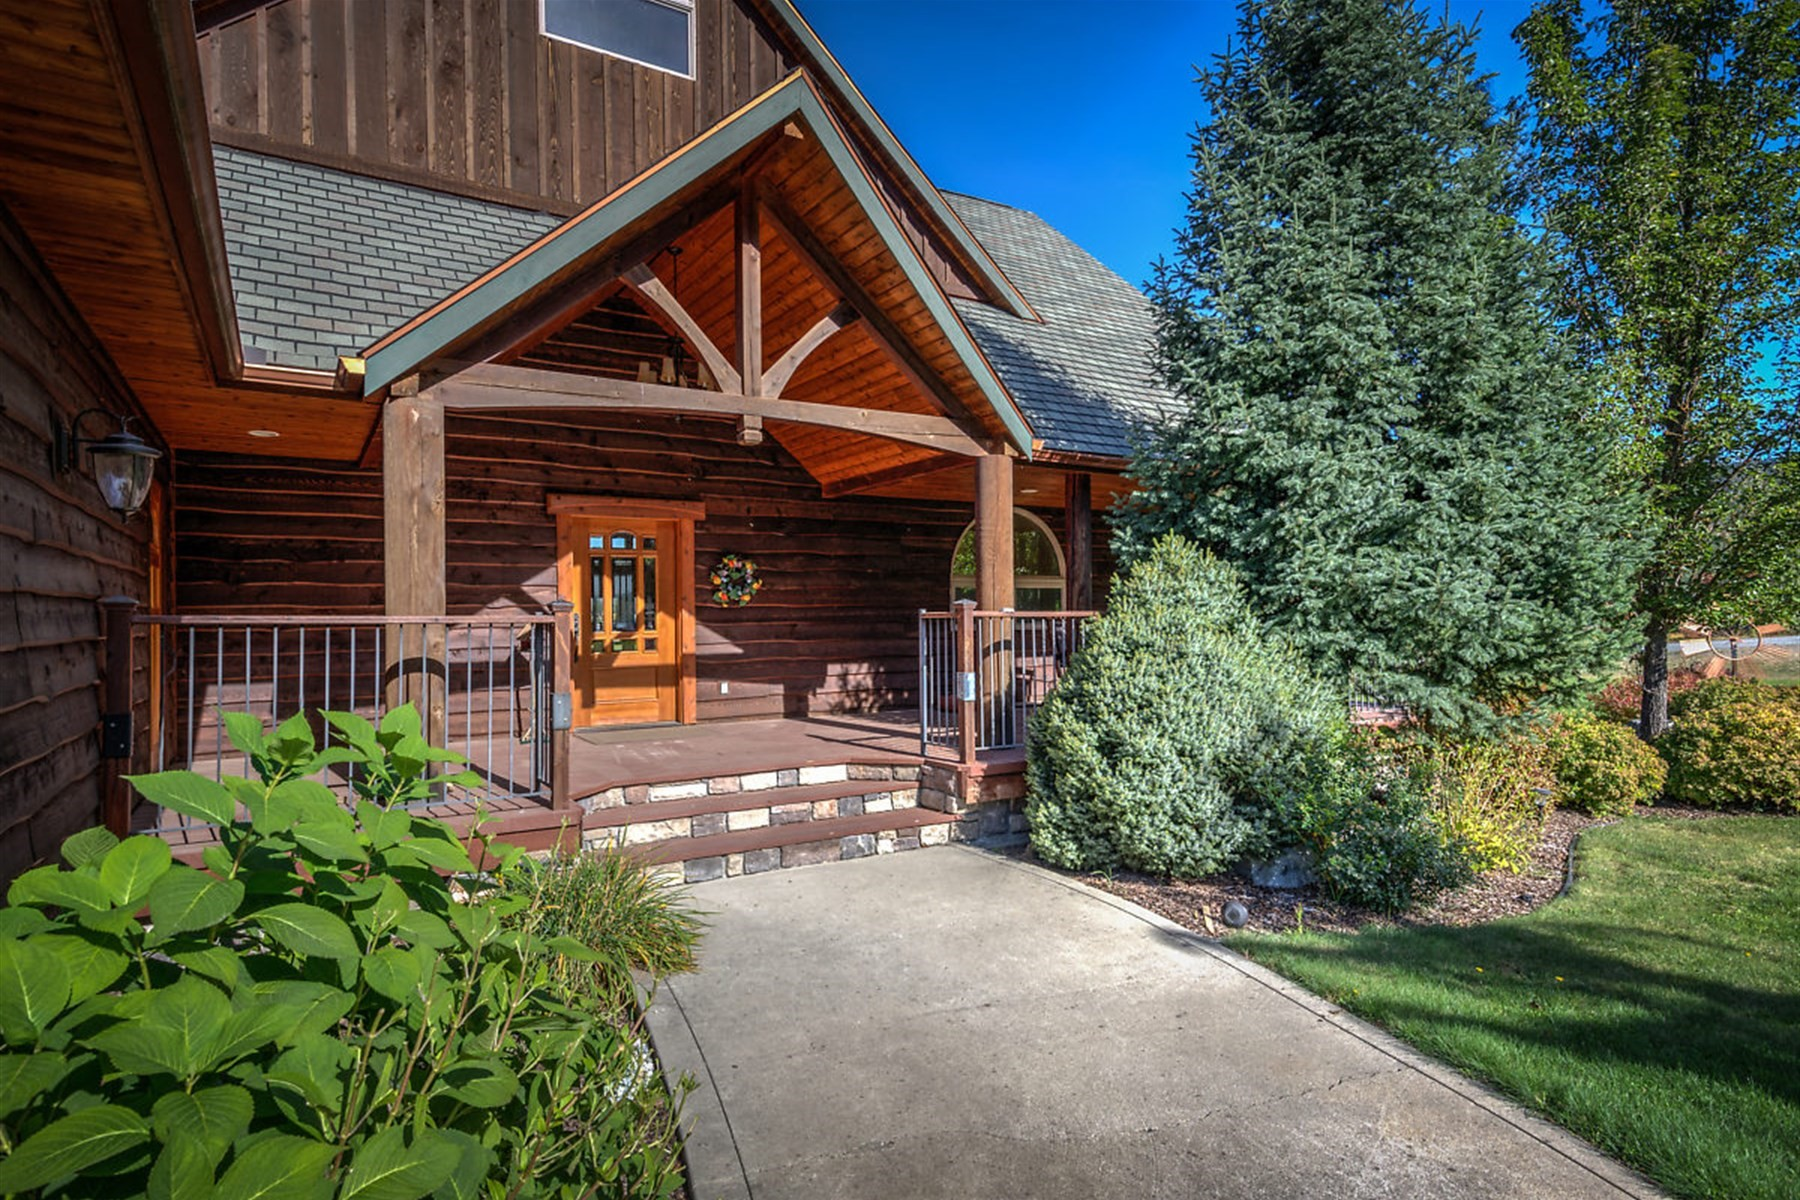 Single Family Home for Active at Views,Private Beach and Boat Slip! 11 Talon Dr Priest River, Idaho 83856 United States